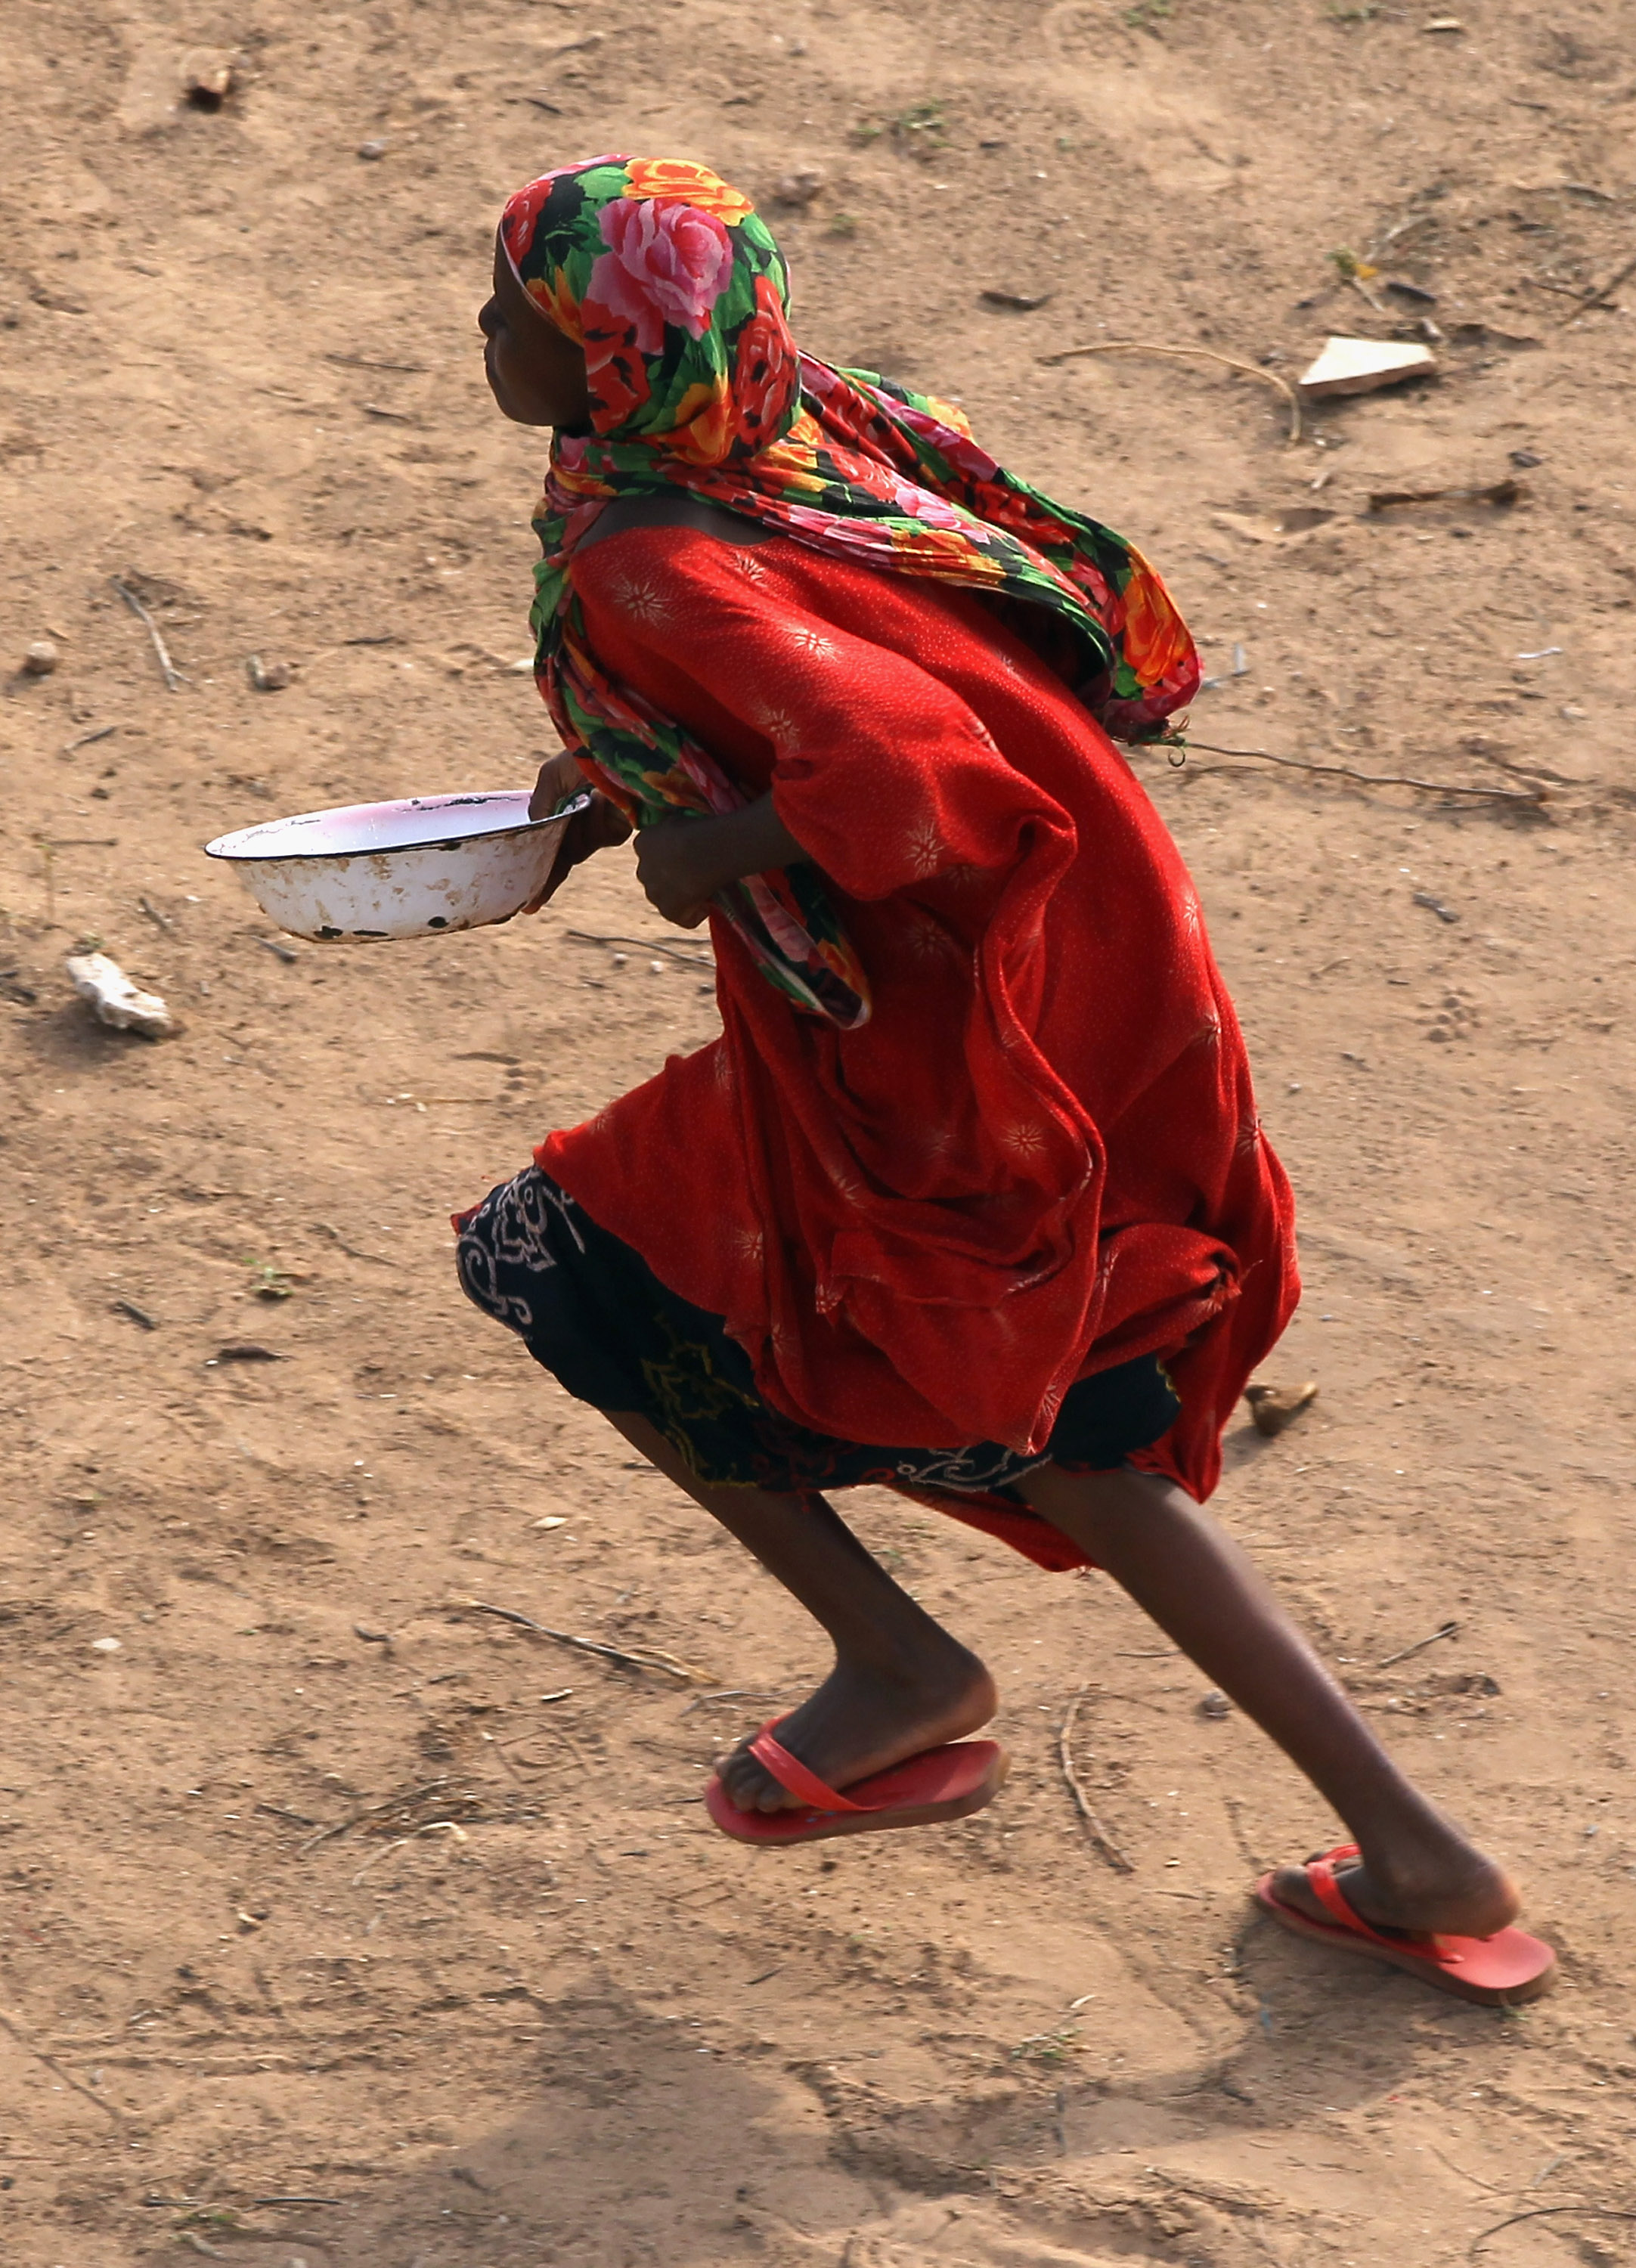 Somali girl runs to get in line for food in 2011